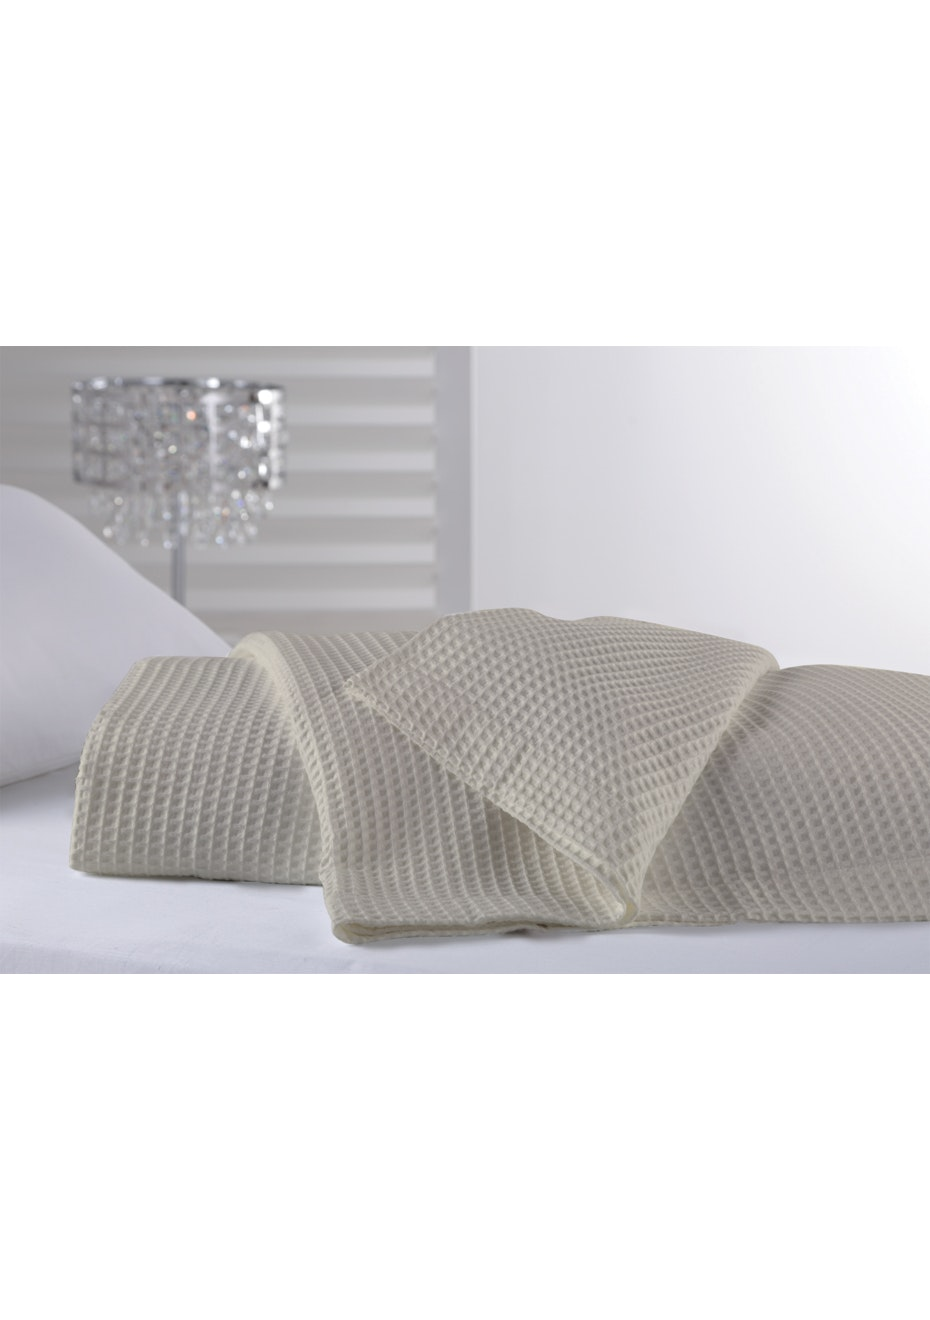 Regatta Cotton Blanket - Oyster - Queen Bed